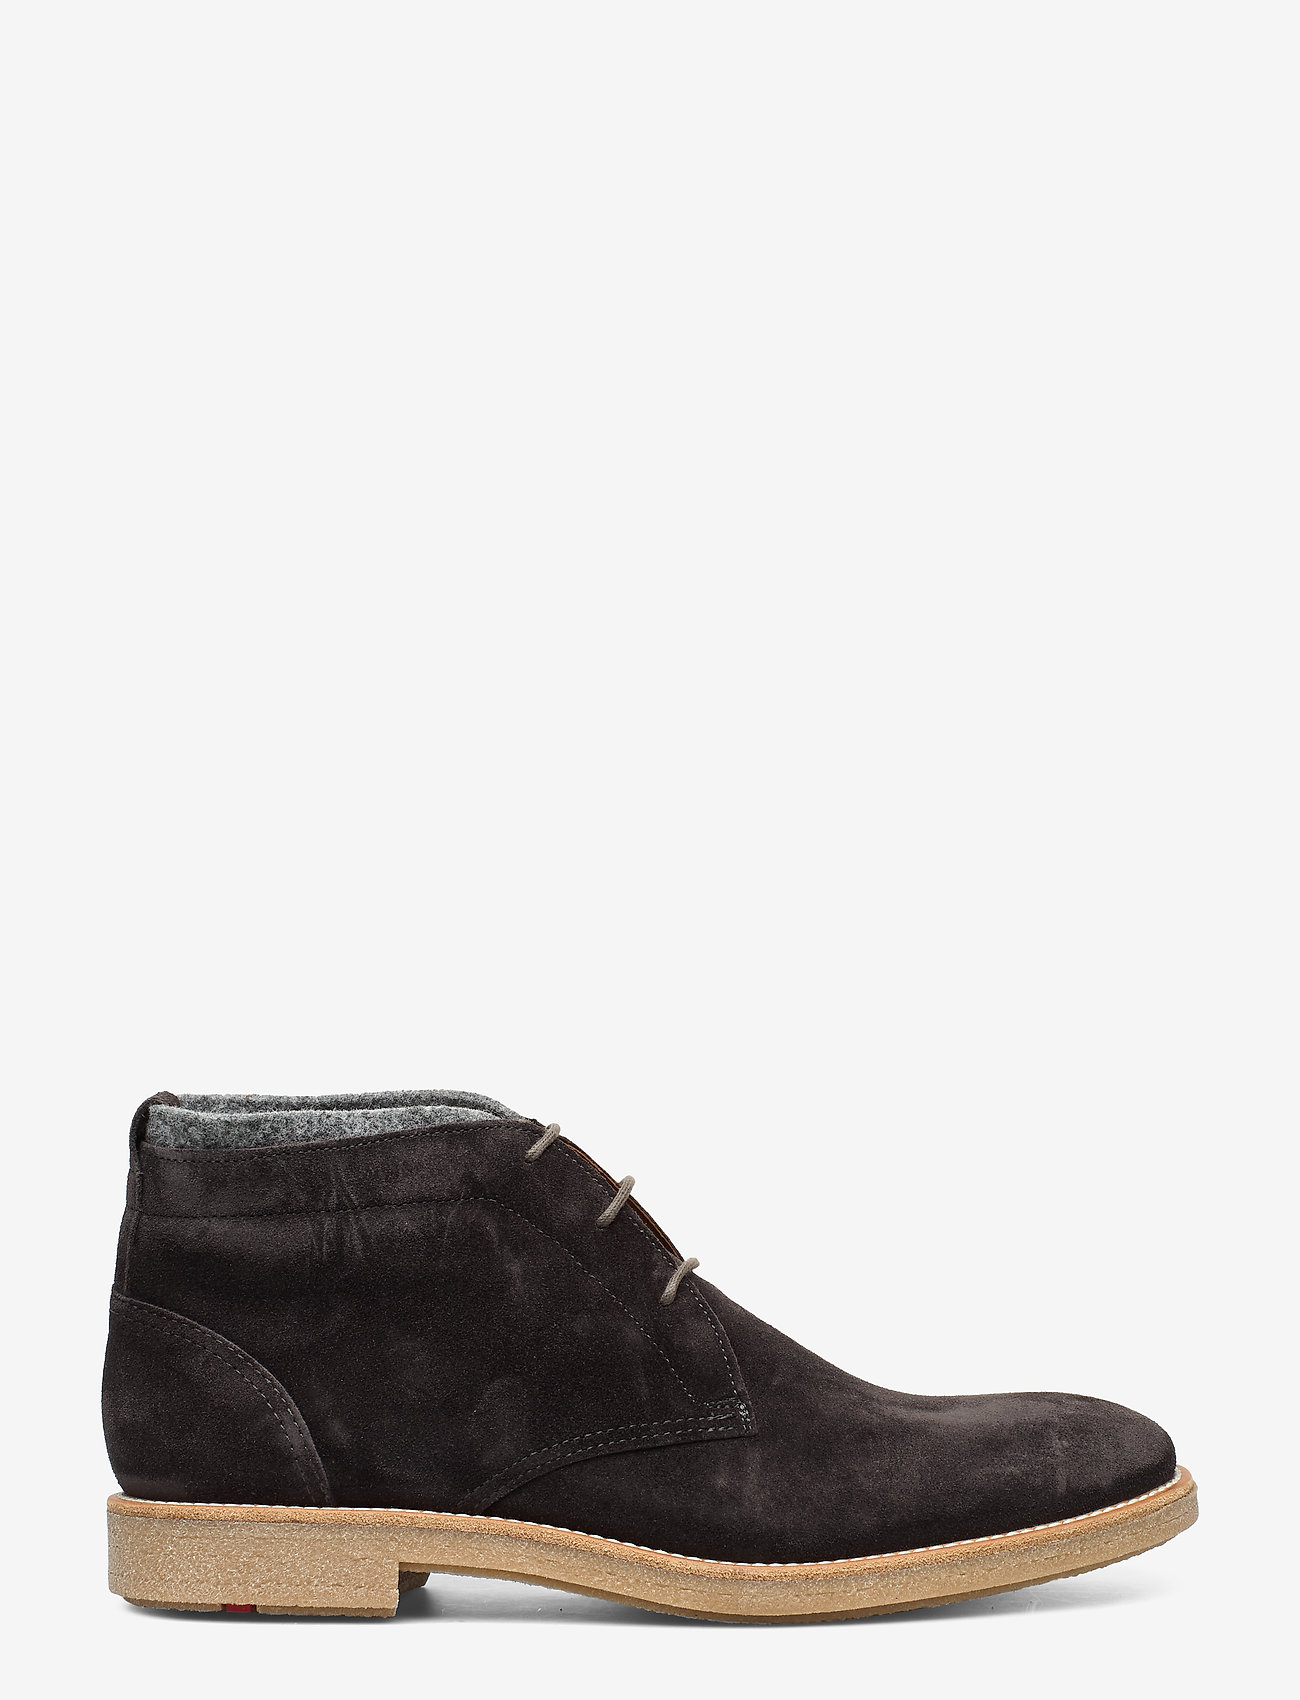 Lloyd - GALVAN - laced boots - 1 - graphit/future grey - 1